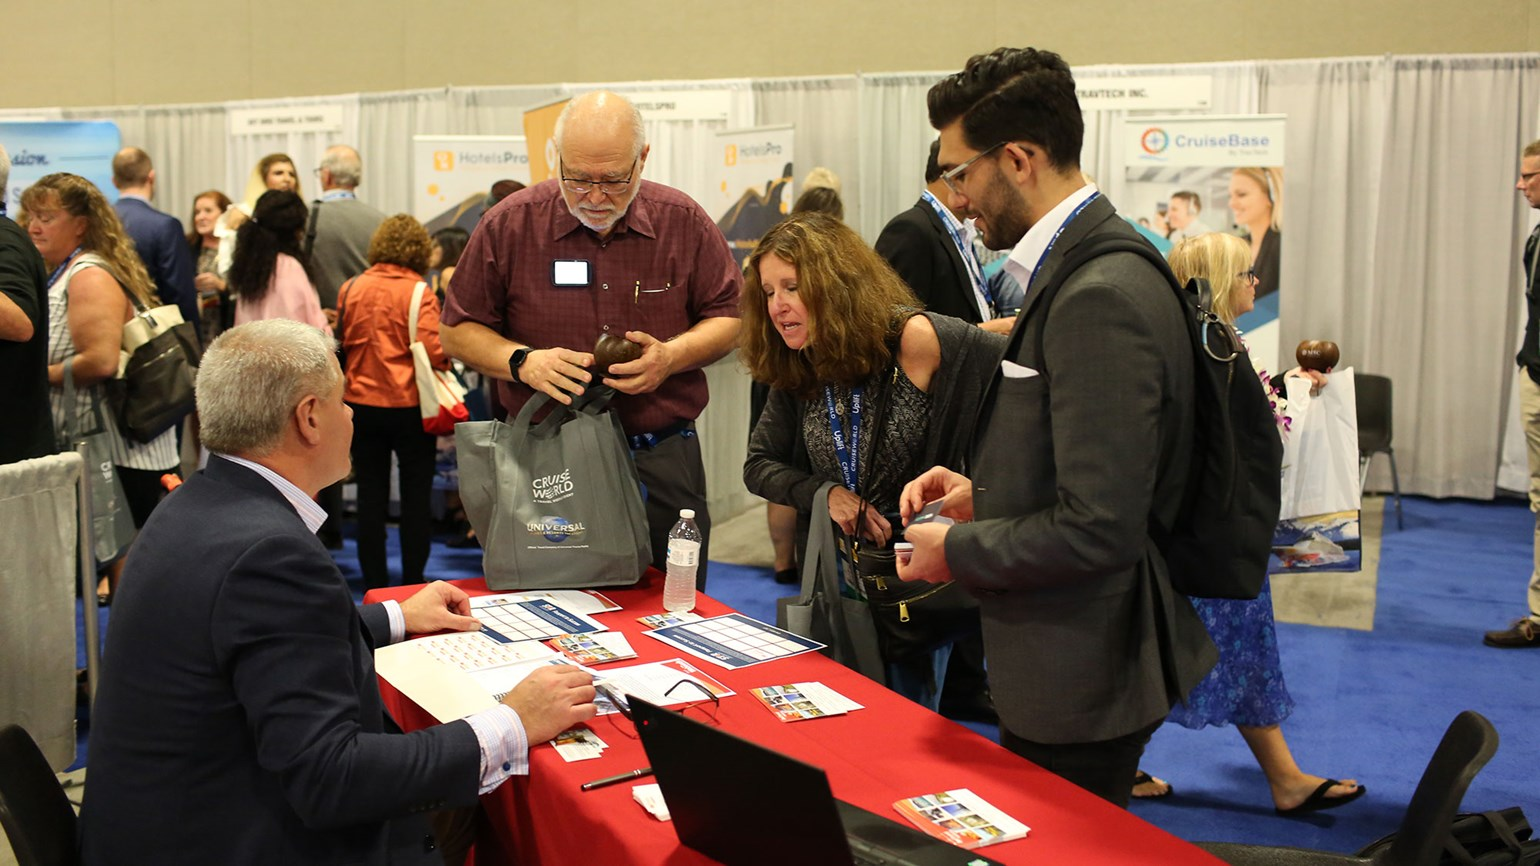 CruiseWorld Day 2: Buzz and enthusiasm at exhibitor showcase